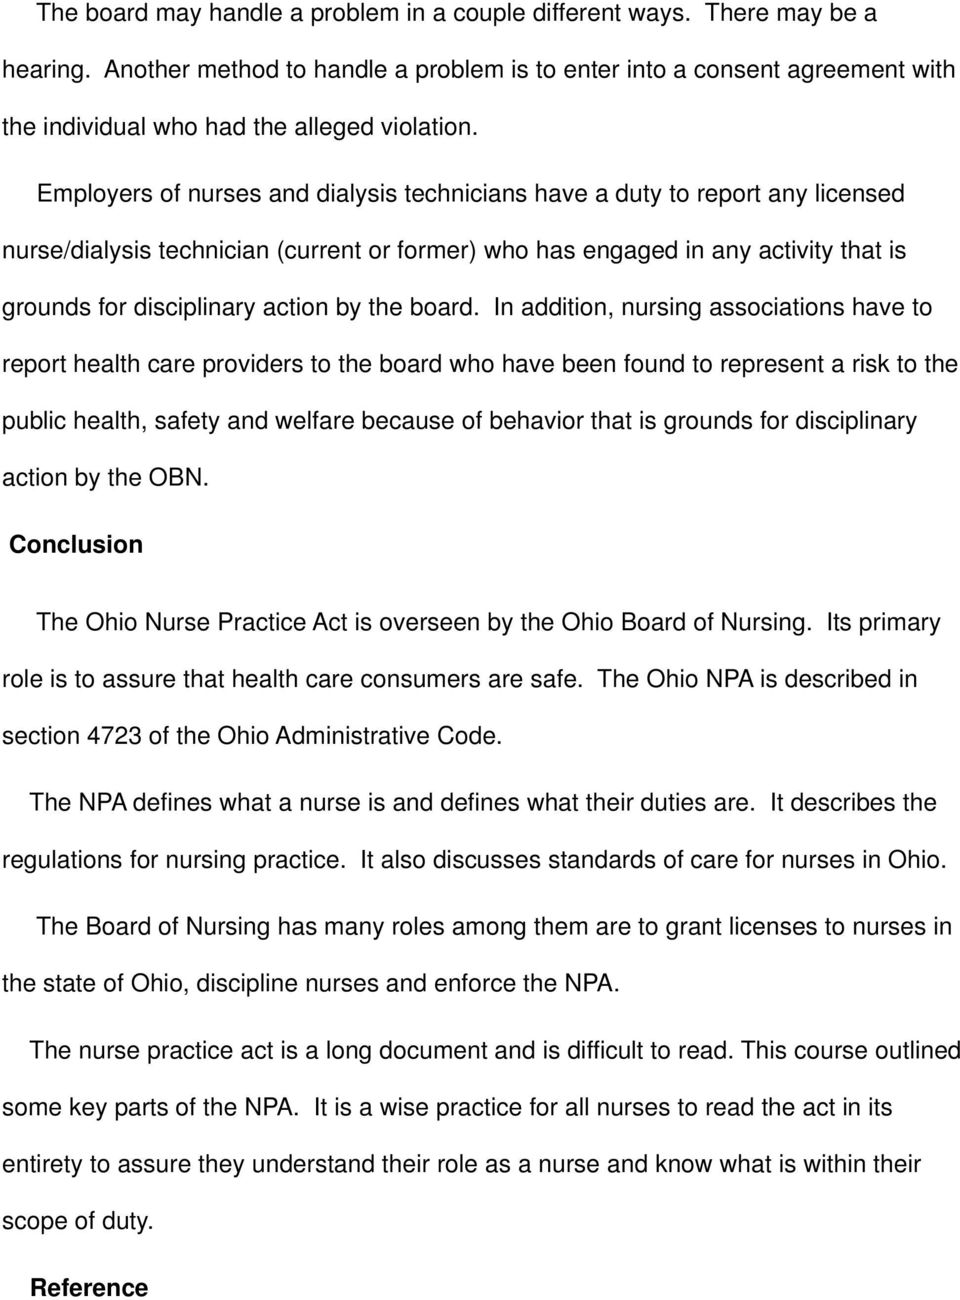 Employers of nurses and dialysis technicians have a duty to report any licensed nurse/dialysis technician (current or former) who has engaged in any activity that is grounds for disciplinary action